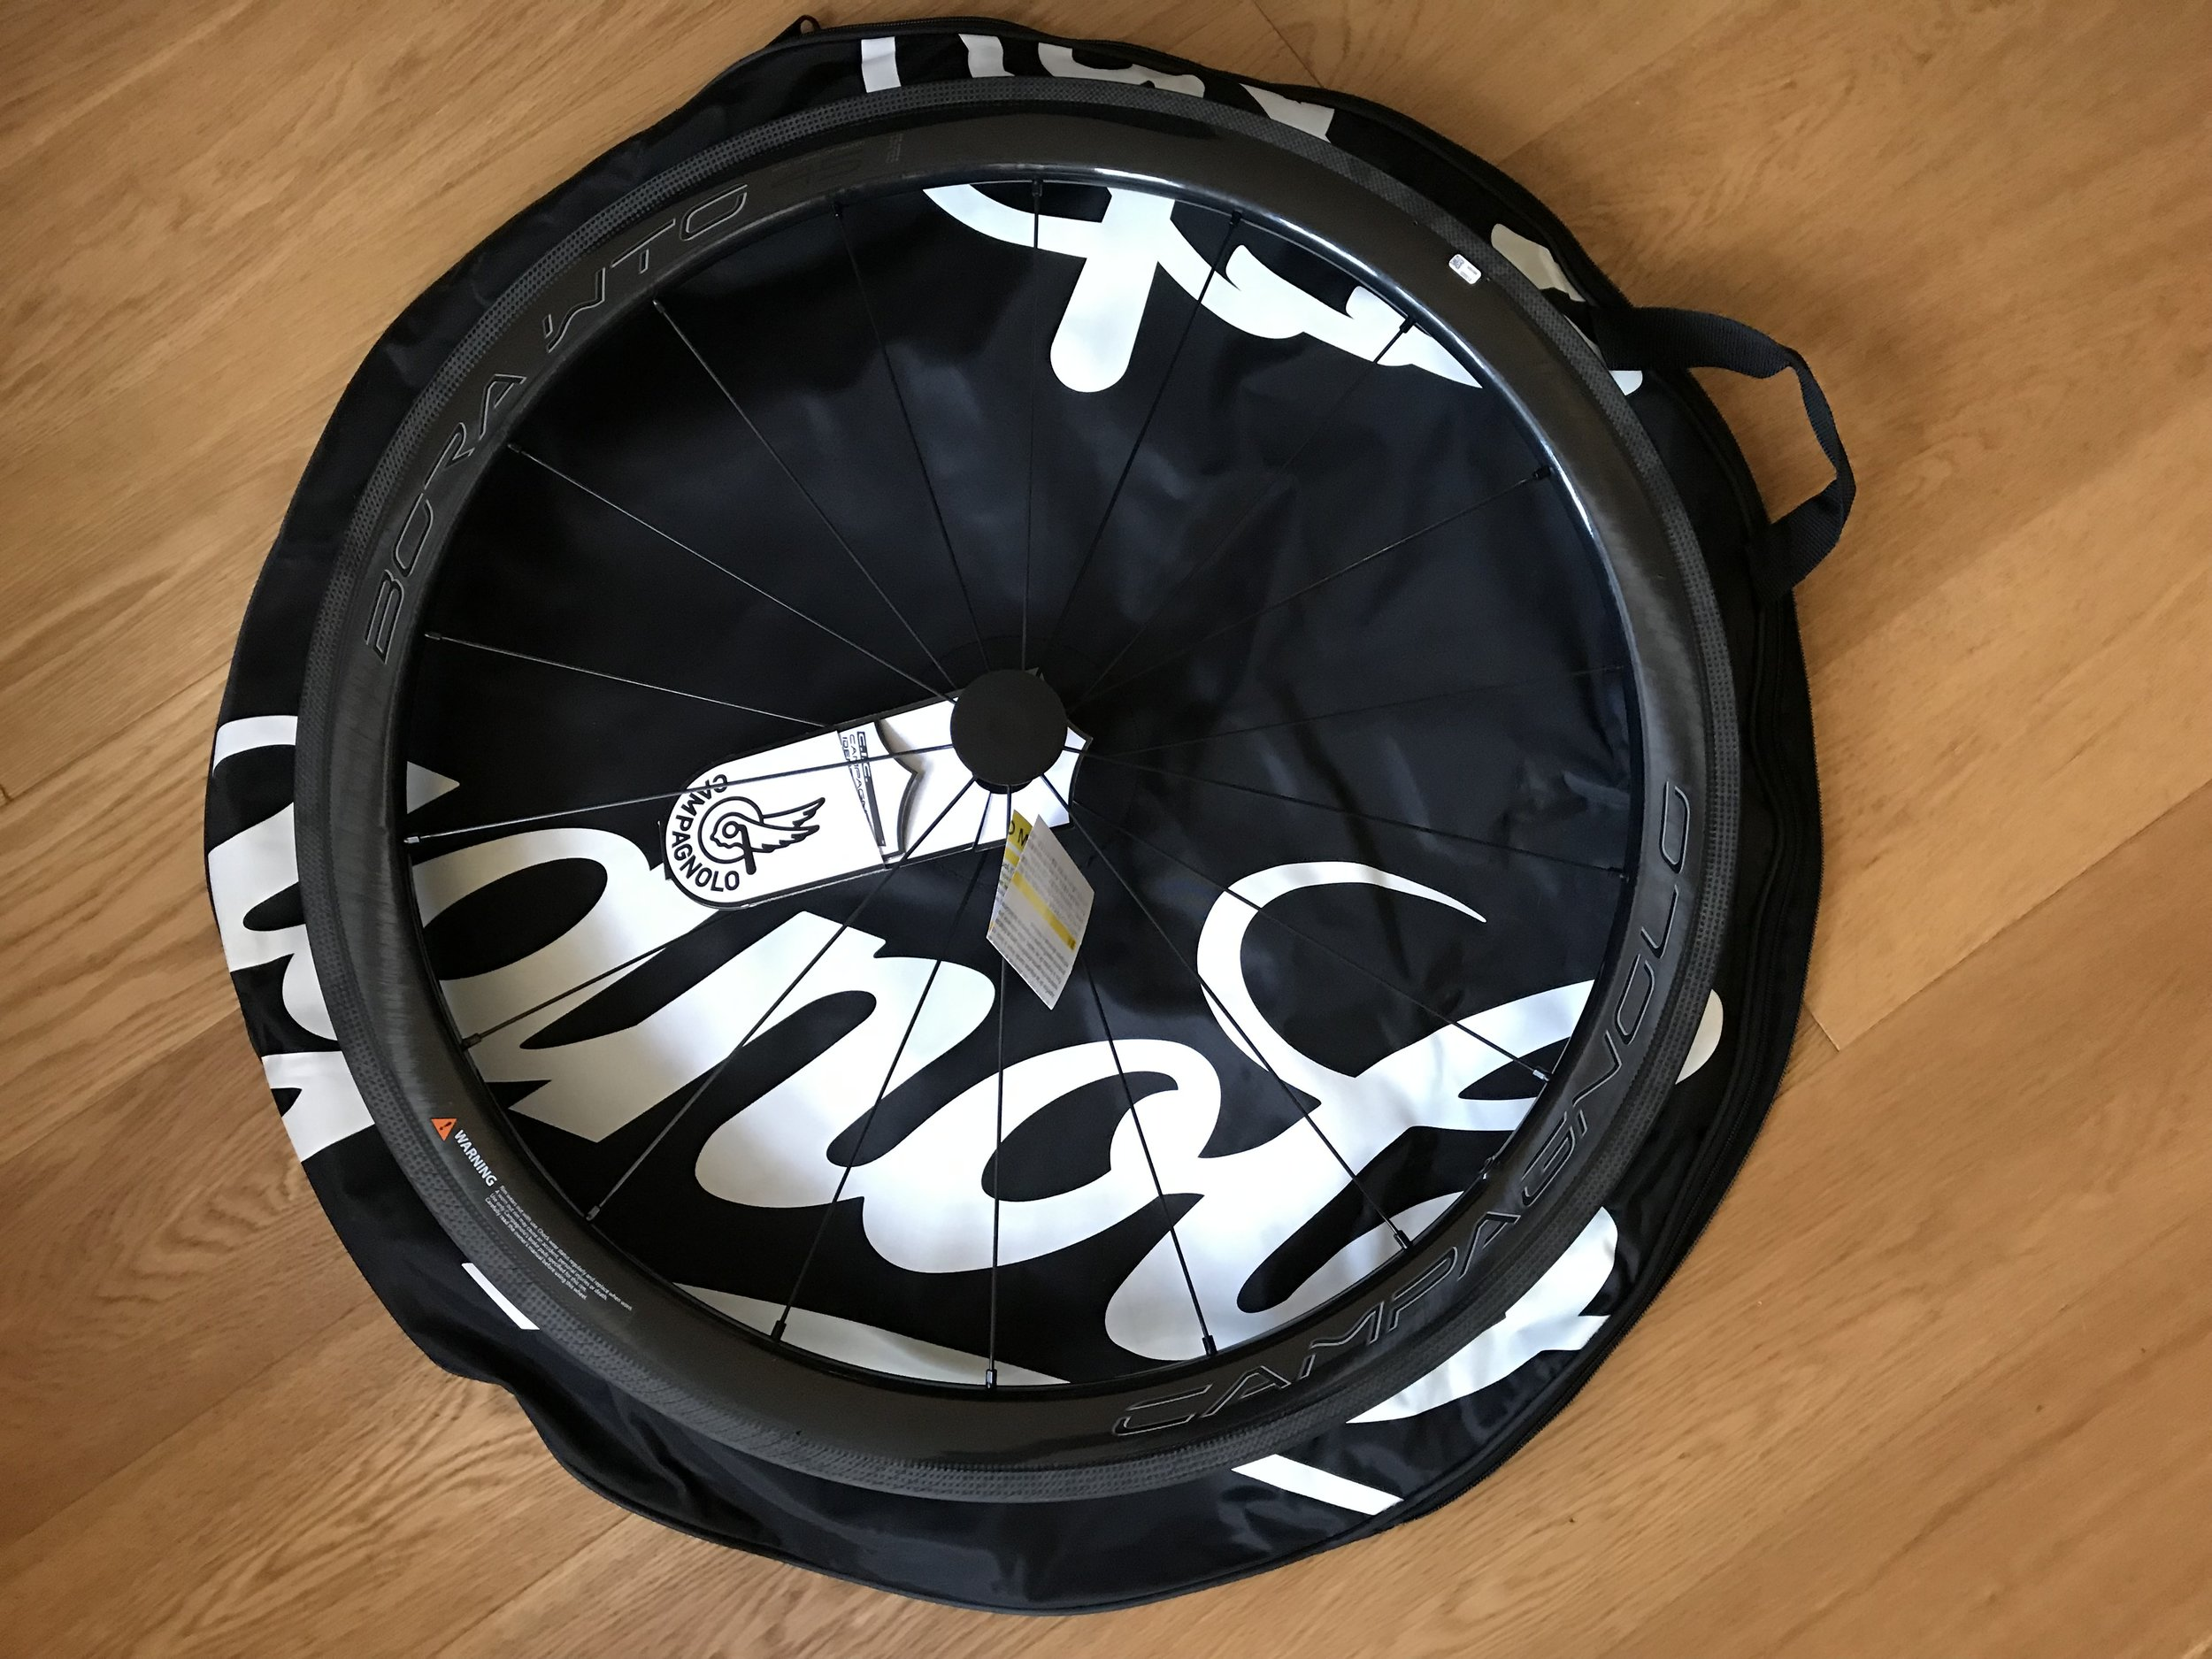 The Campagnolo wheels came in very budget wheelbags - more plastic waste that should have been avoided.